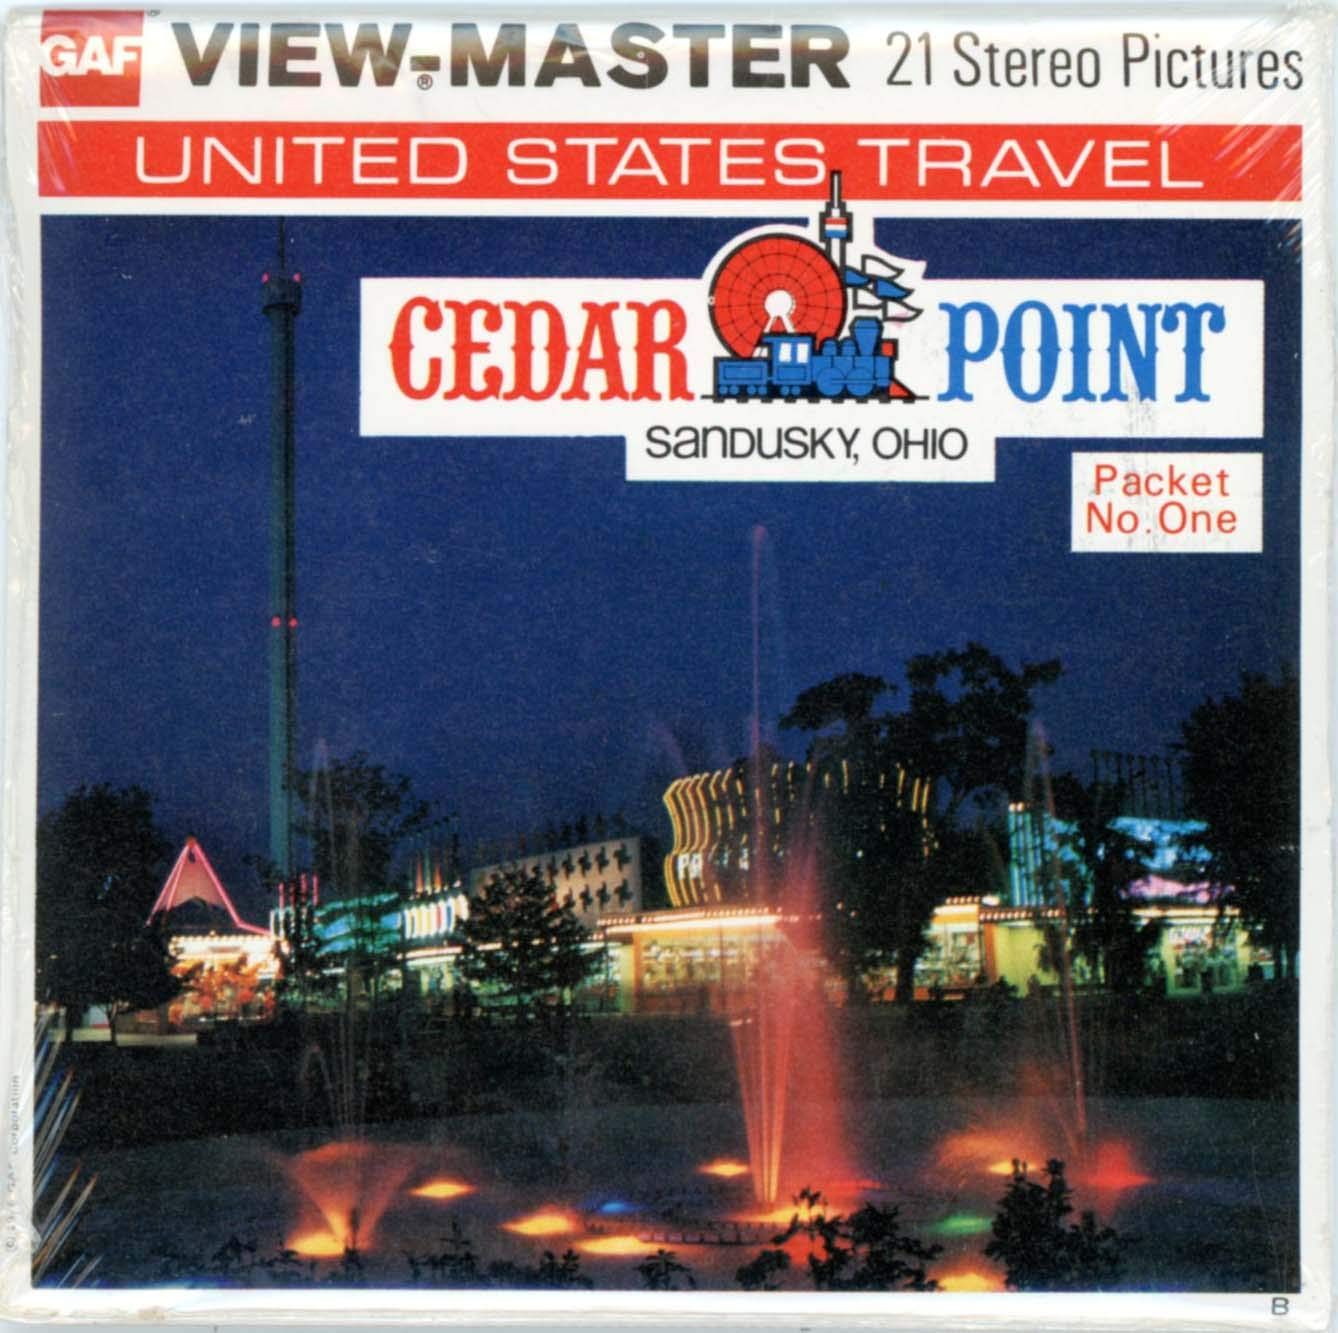 Cedar Point- Sandusky, Ohio - Classic ViewMaster - 3 Reel Set - 21 3D Images - Mint